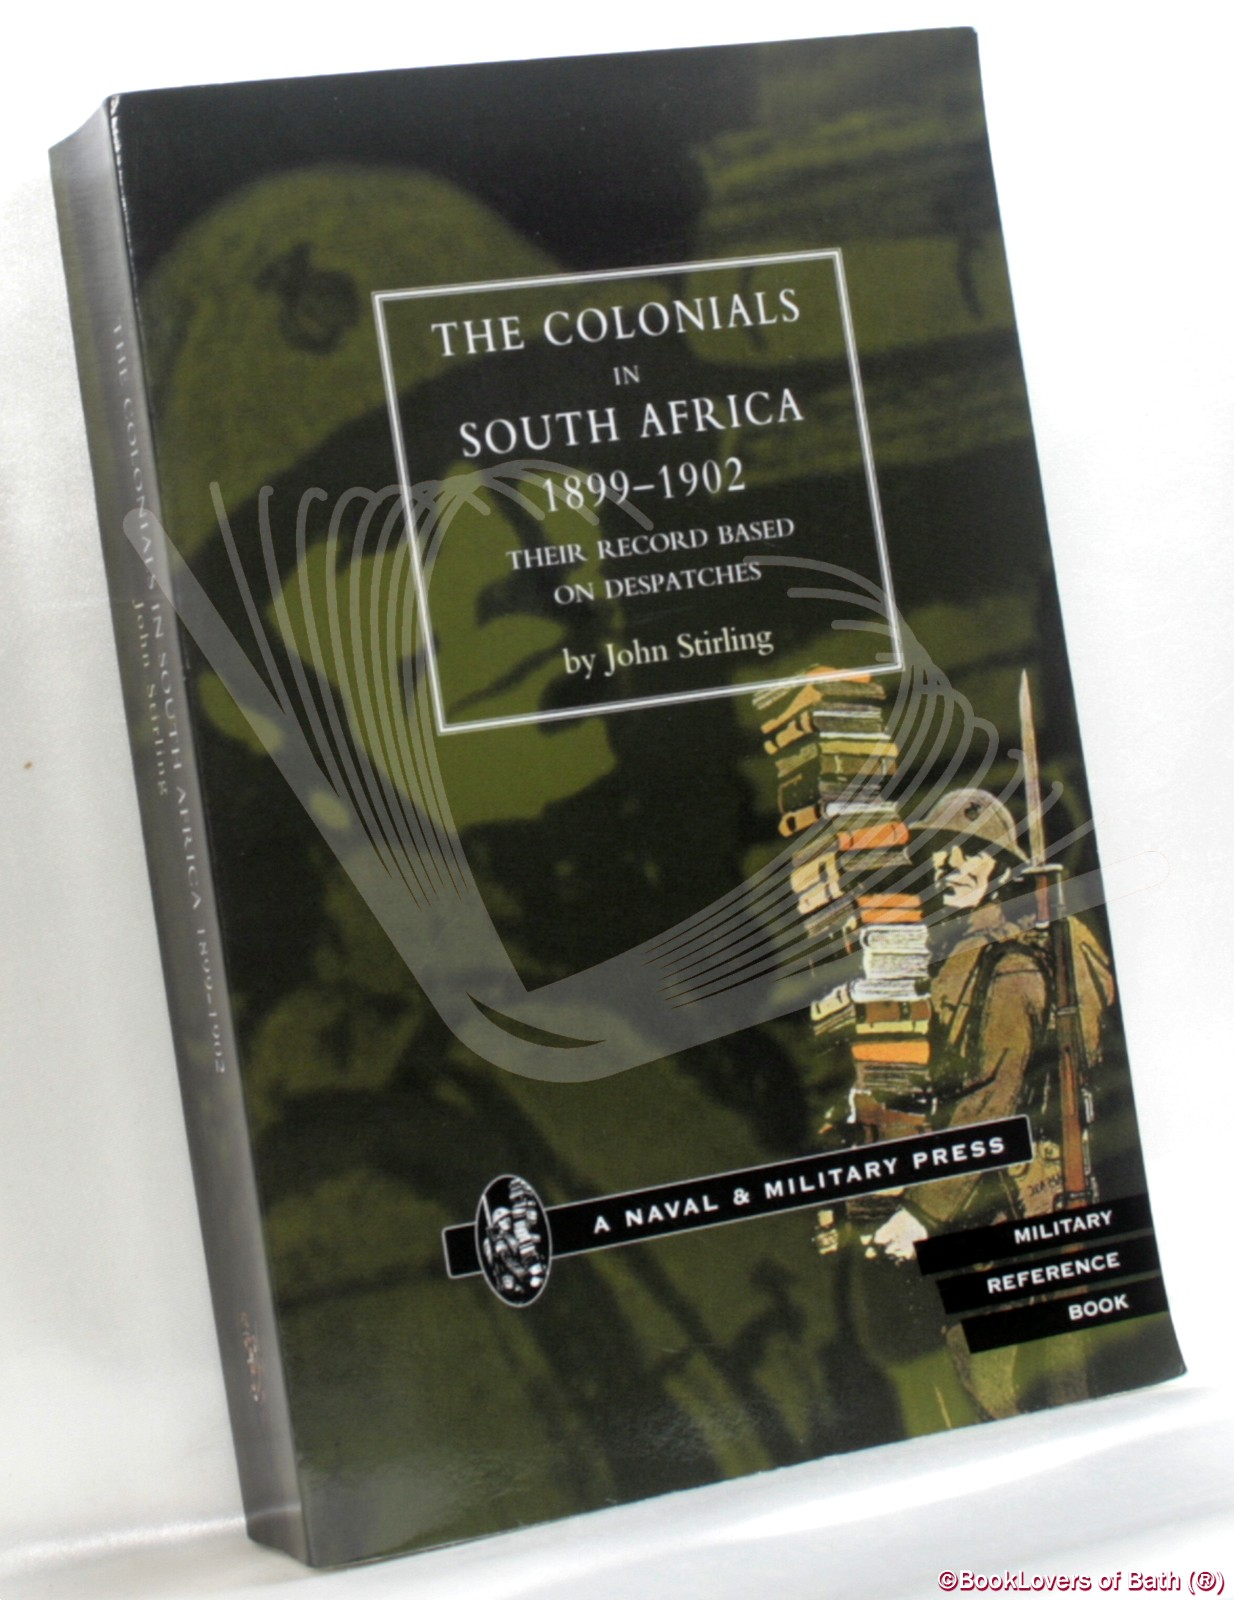 The Colonials in South Africa, 1899-1902: Their Record, Based on the Despatches - John Stirling